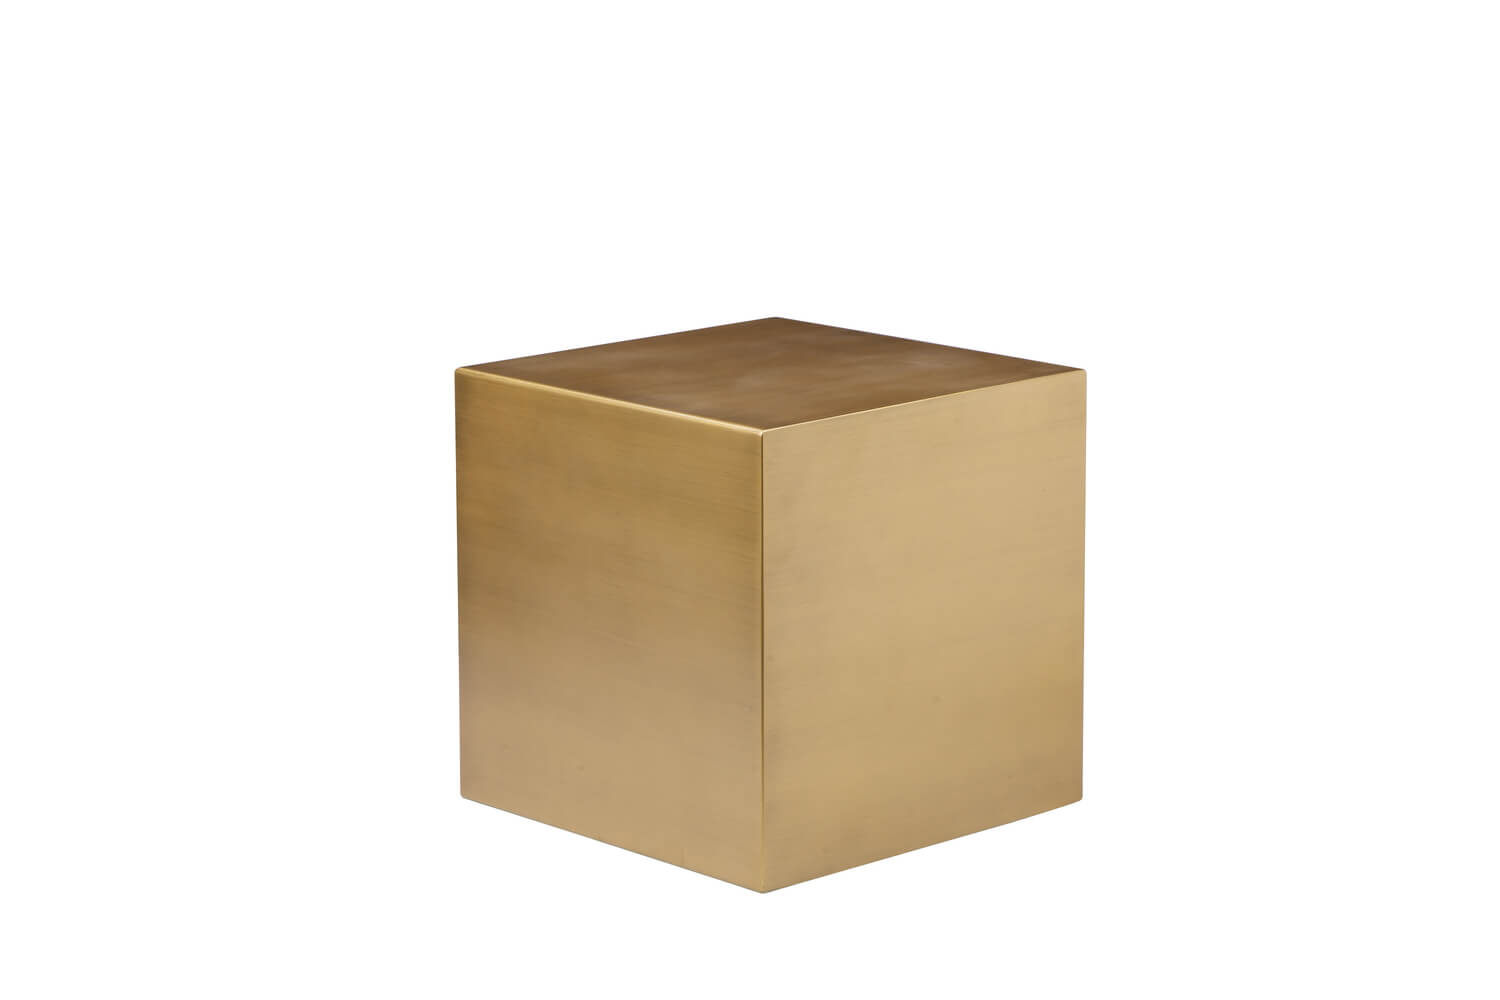 brass cube side table modern furniture brickell collection gold end wire accent white glass lamp room essentials blanket oblong target kitchen dining sets black oval condo toronto